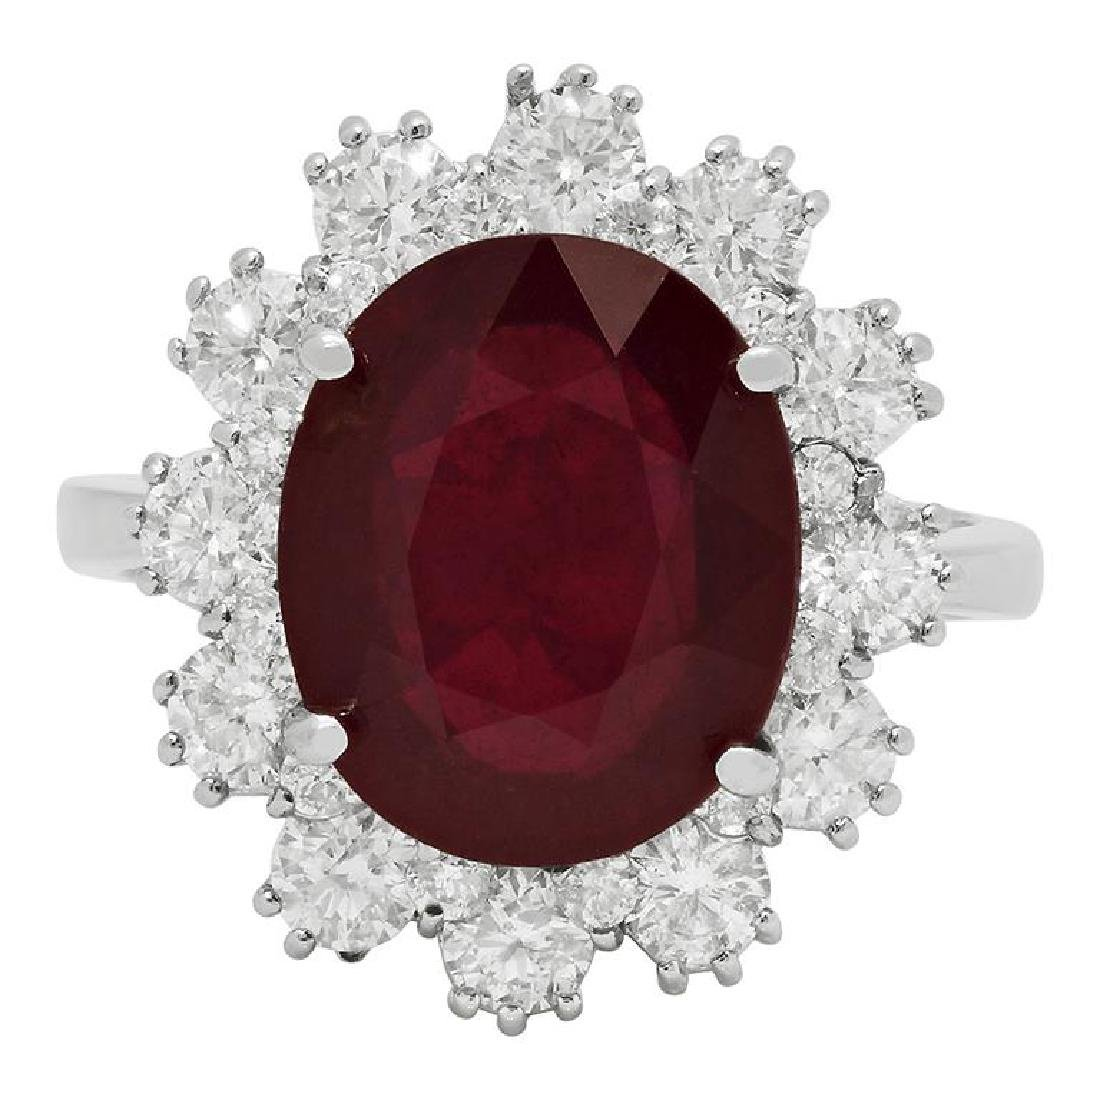 14k White Gold 6.15ct Ruby 1.44ct Diamond Ring - 3